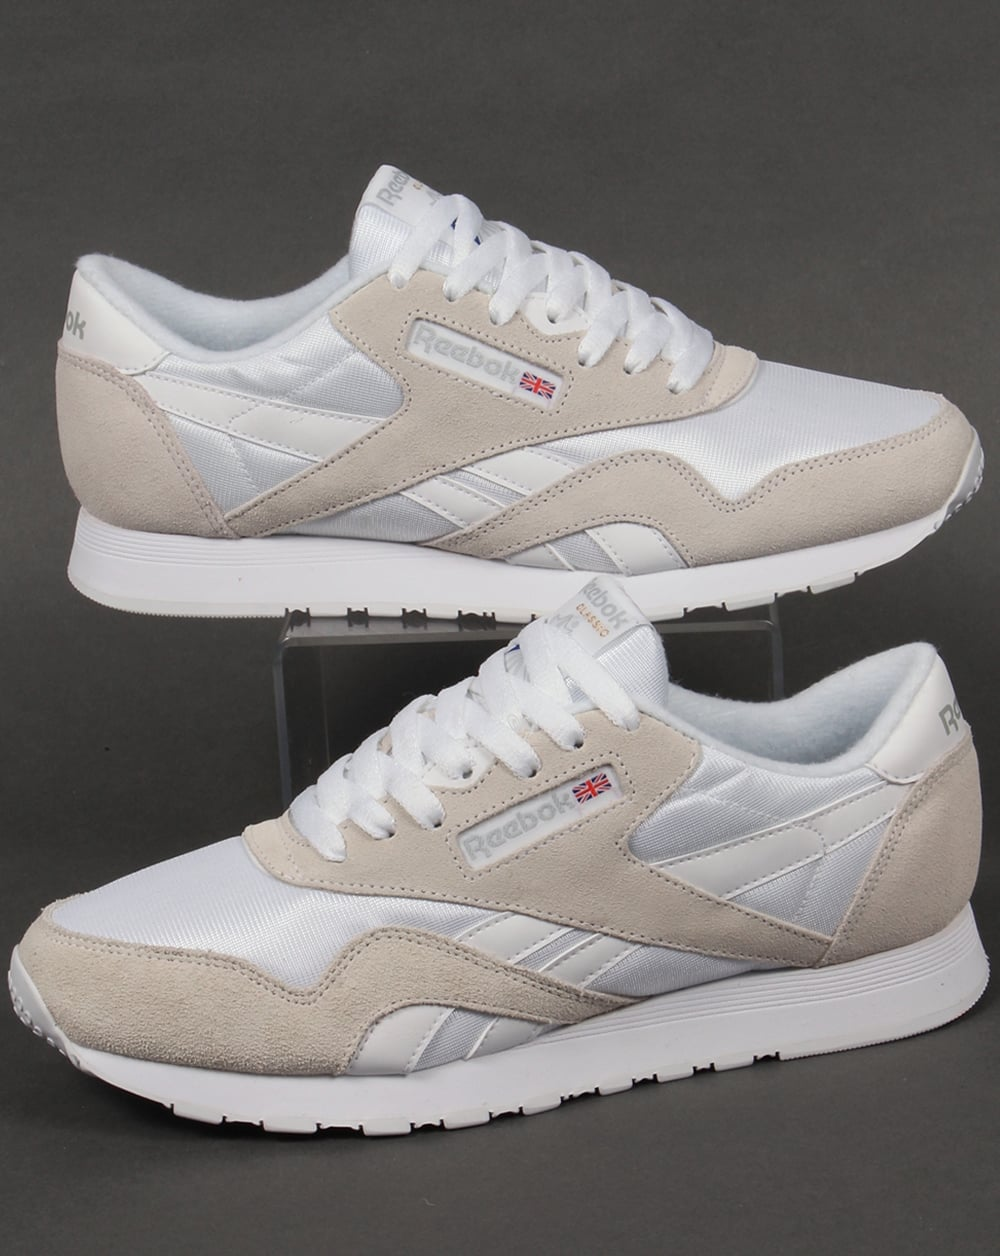 9ede747f6f83a Reebok Reebok Classic Nylon Trainers White Light Grey